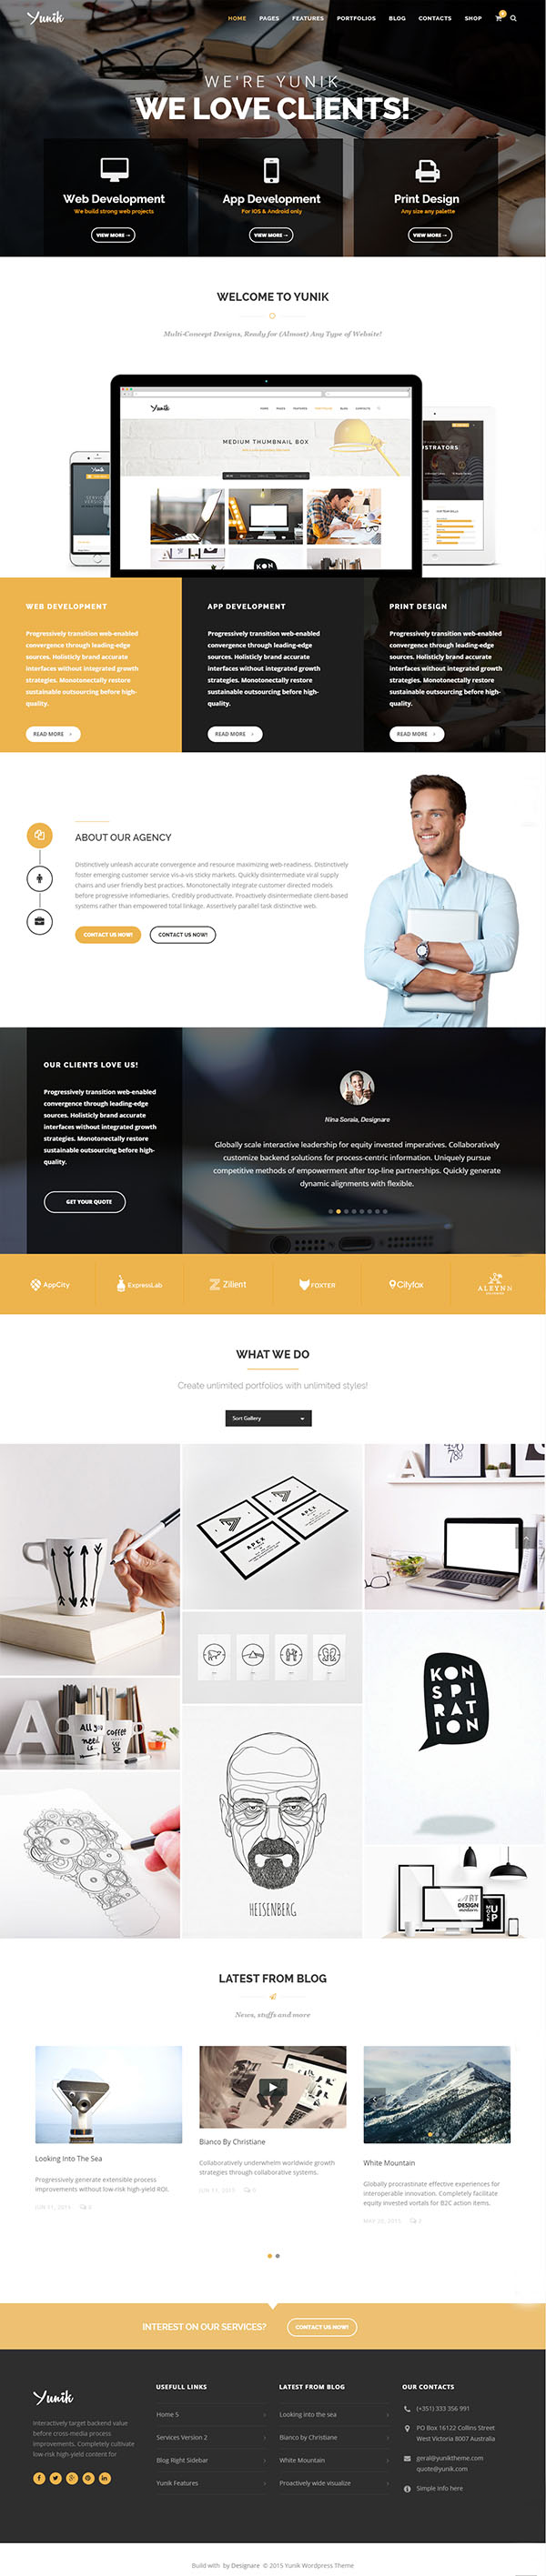 Yunik - Ultimate Multi-Concept WordPress Theme